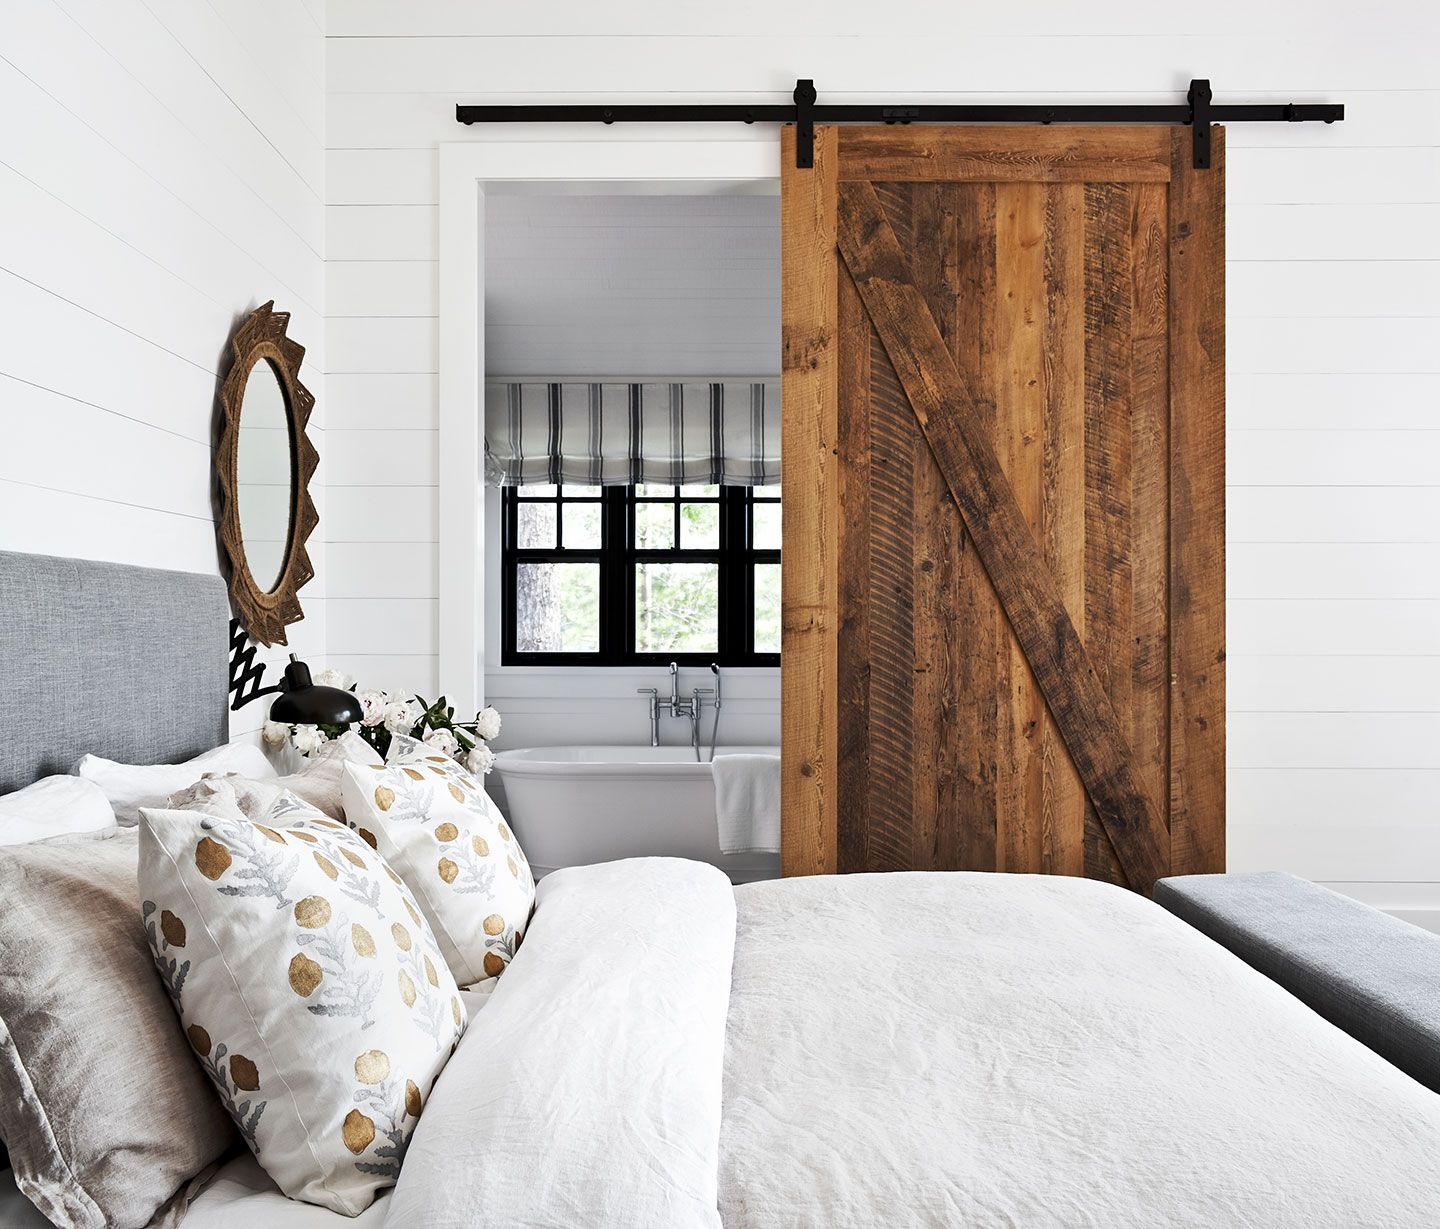 17 Modern Rustic Bedroom Decorating Ideas With Swagger Accent Wall Mirrors (View 18 of 20)